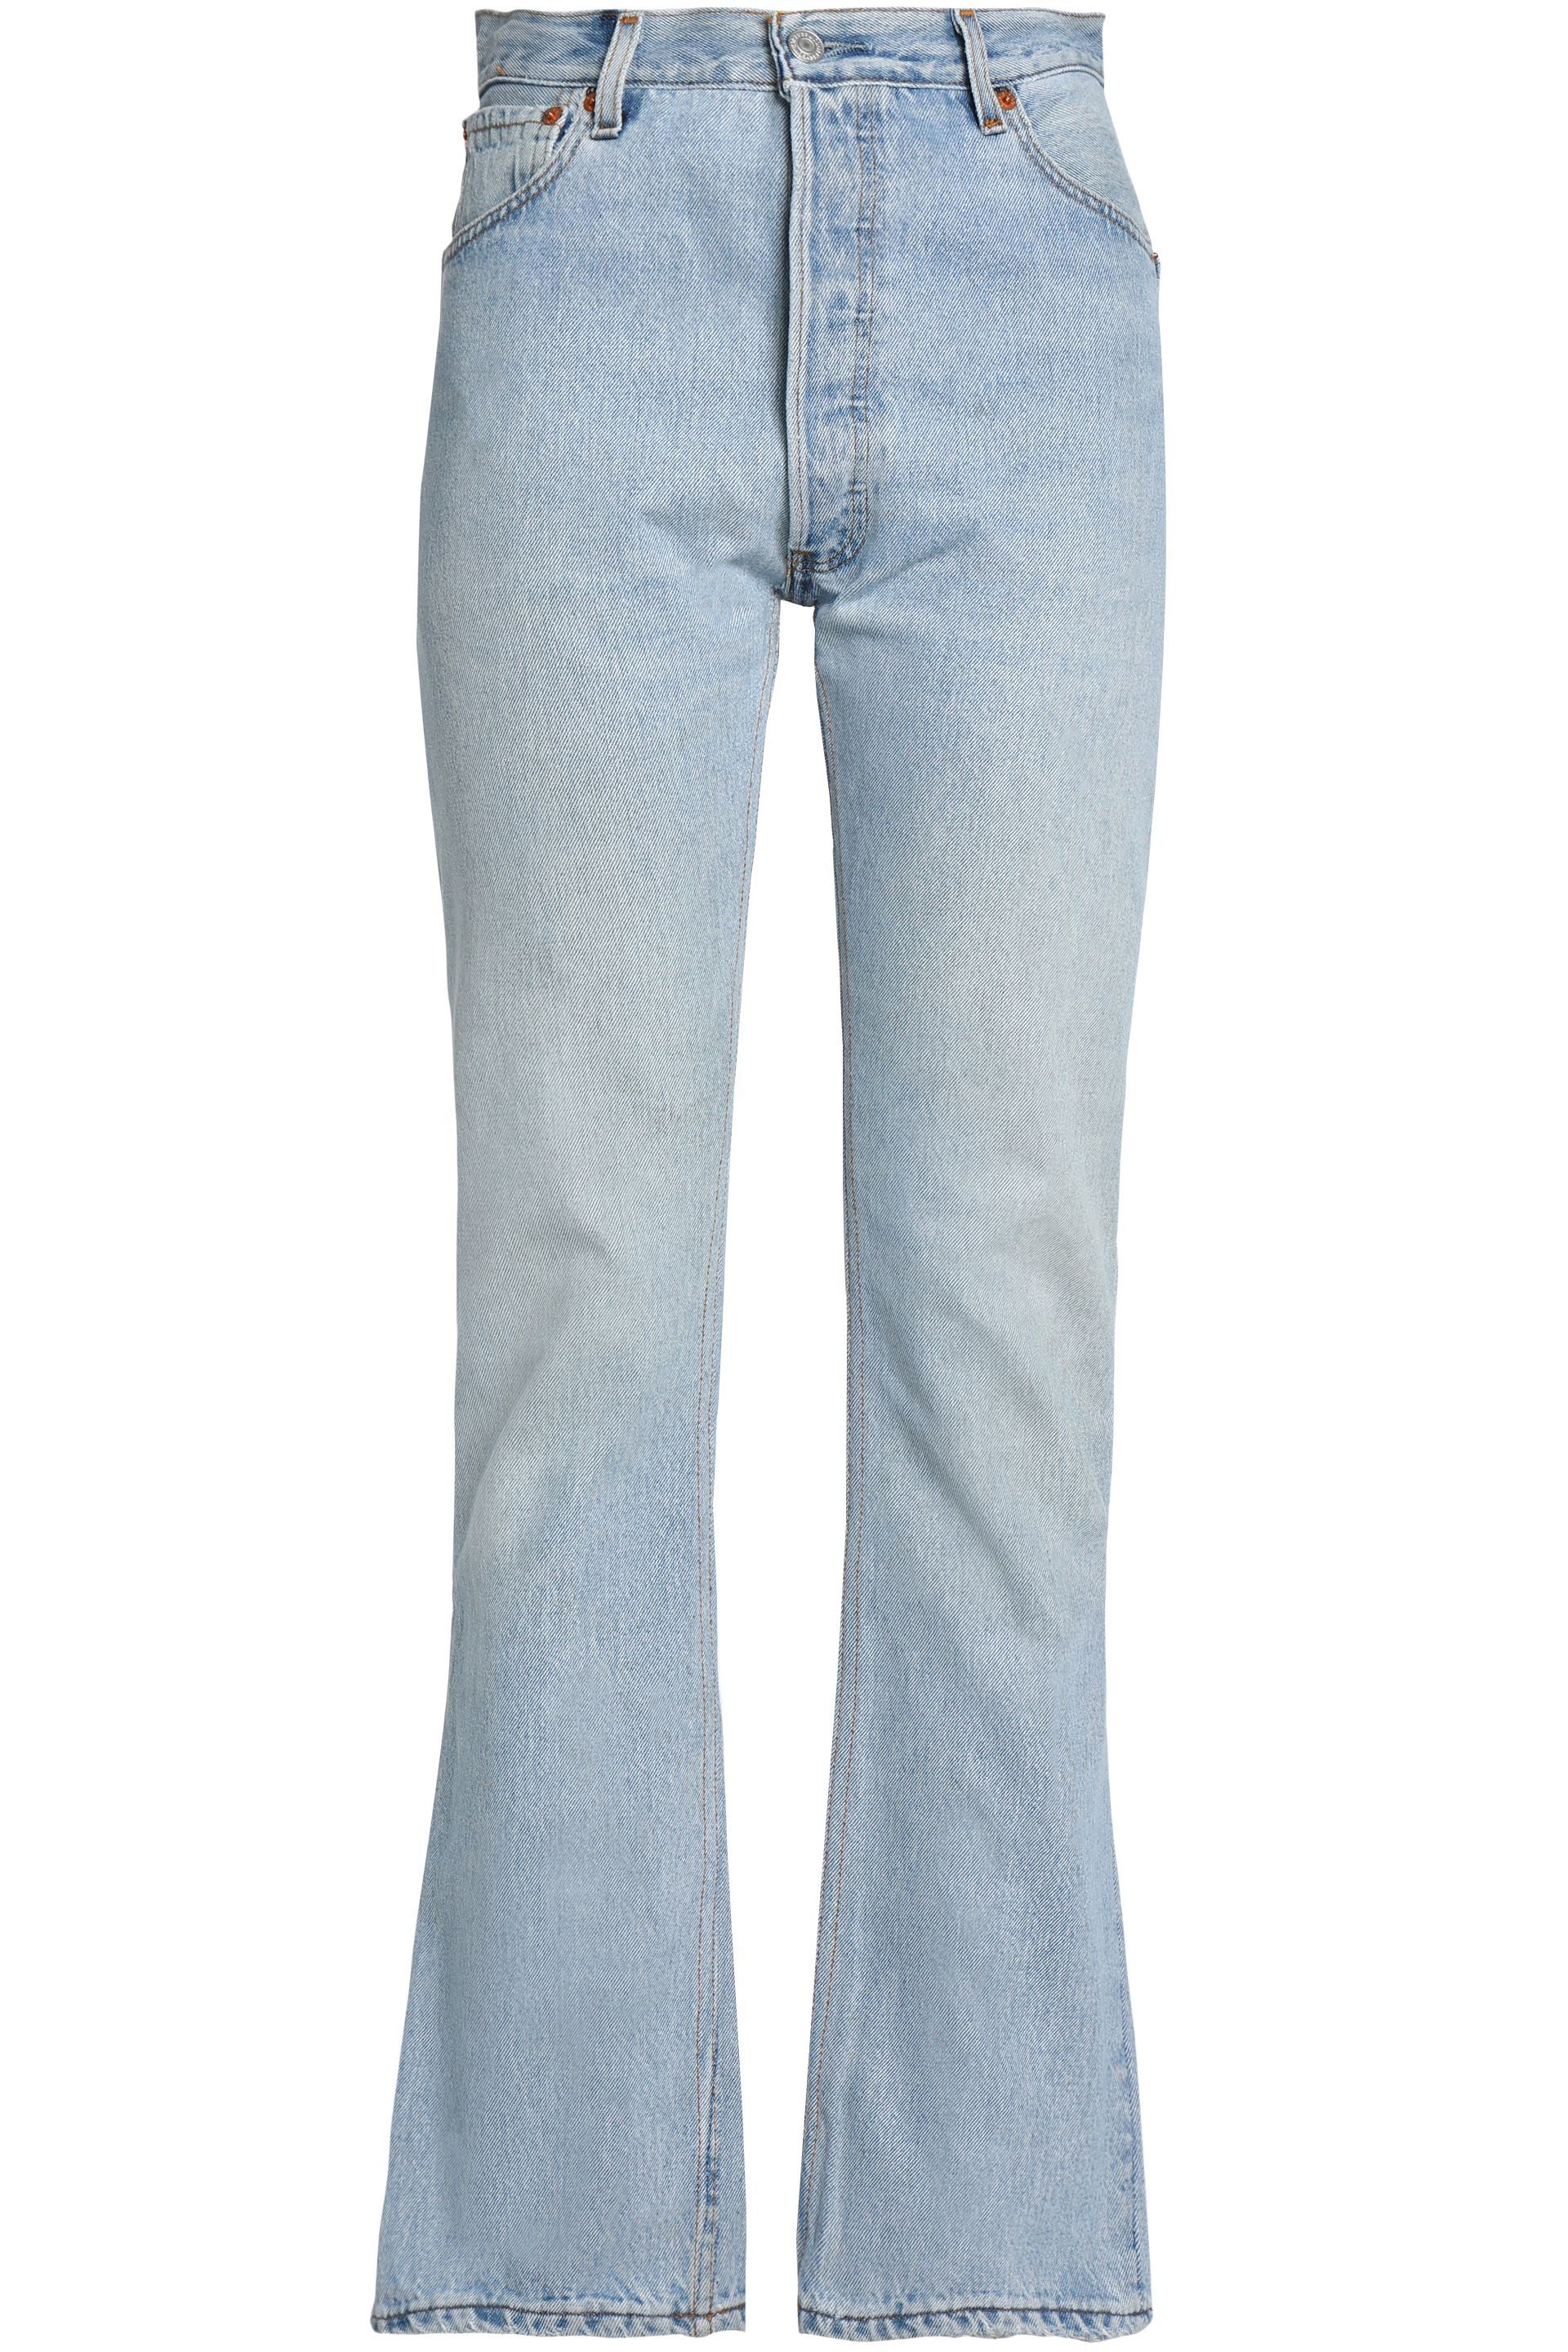 bootcut jeans - Blue Re/Done Fi0RlC7